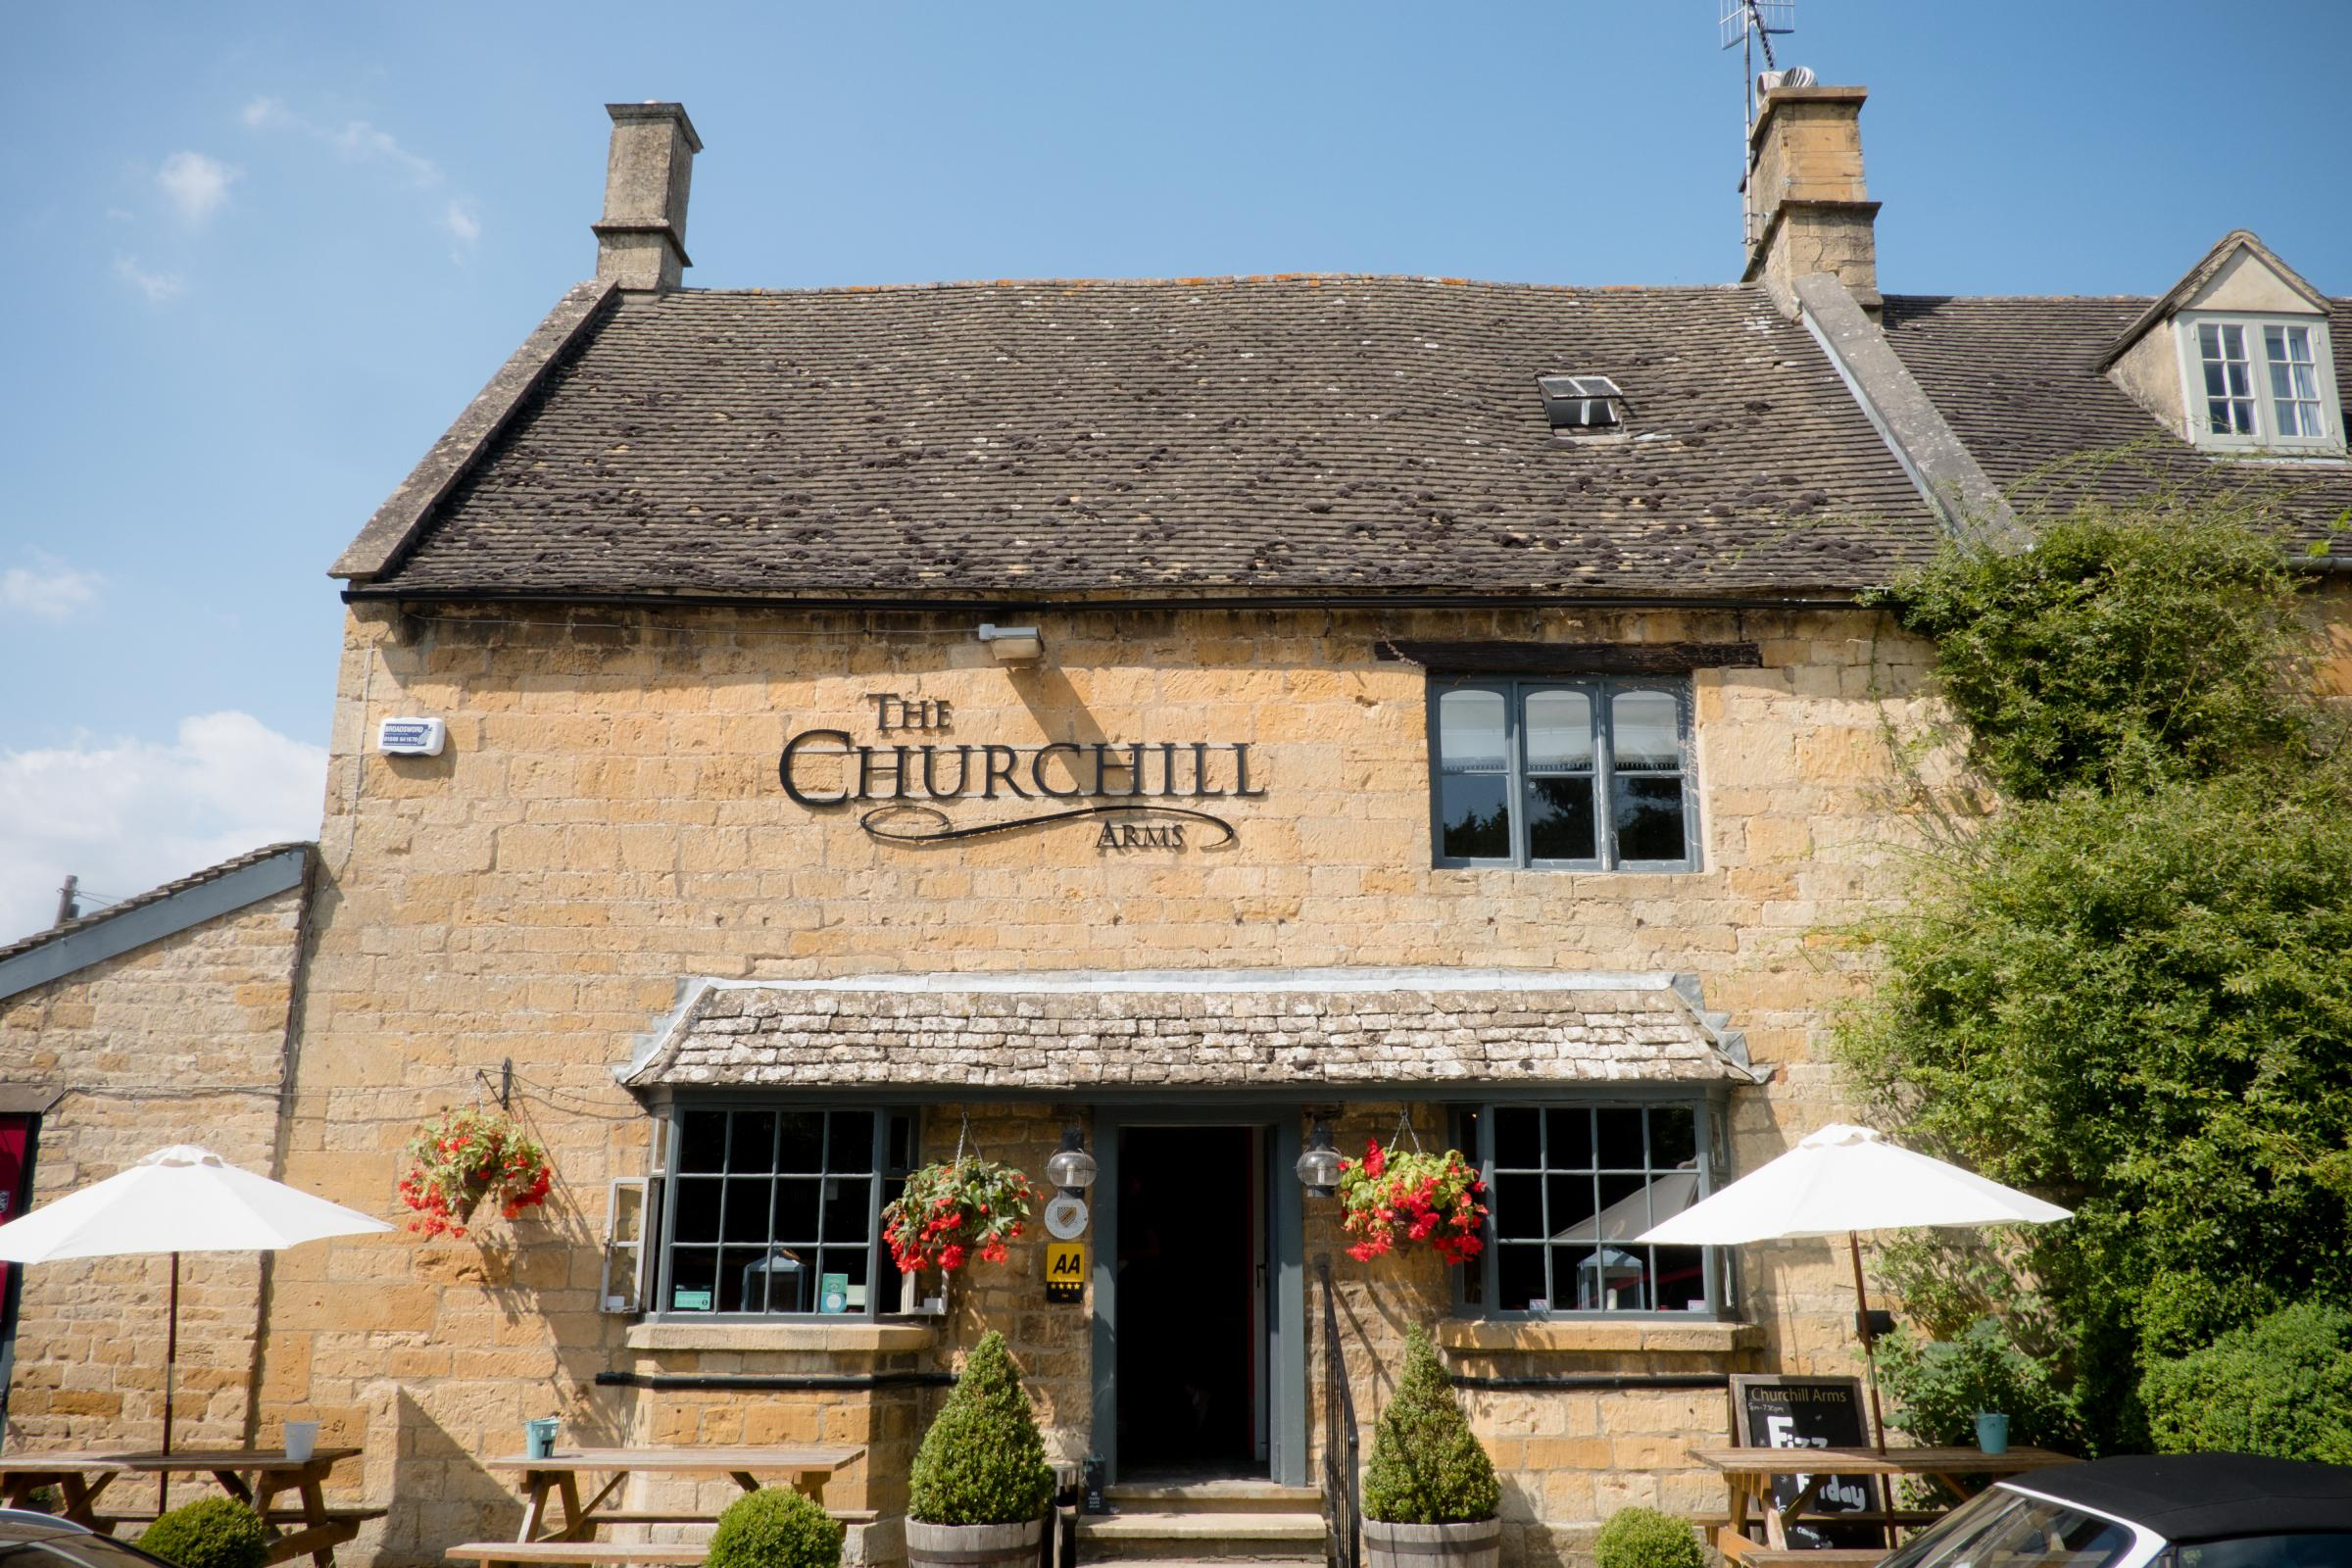 The Churchill Arms, Paxford, Chipping Campden - Charlie Flounders Photography